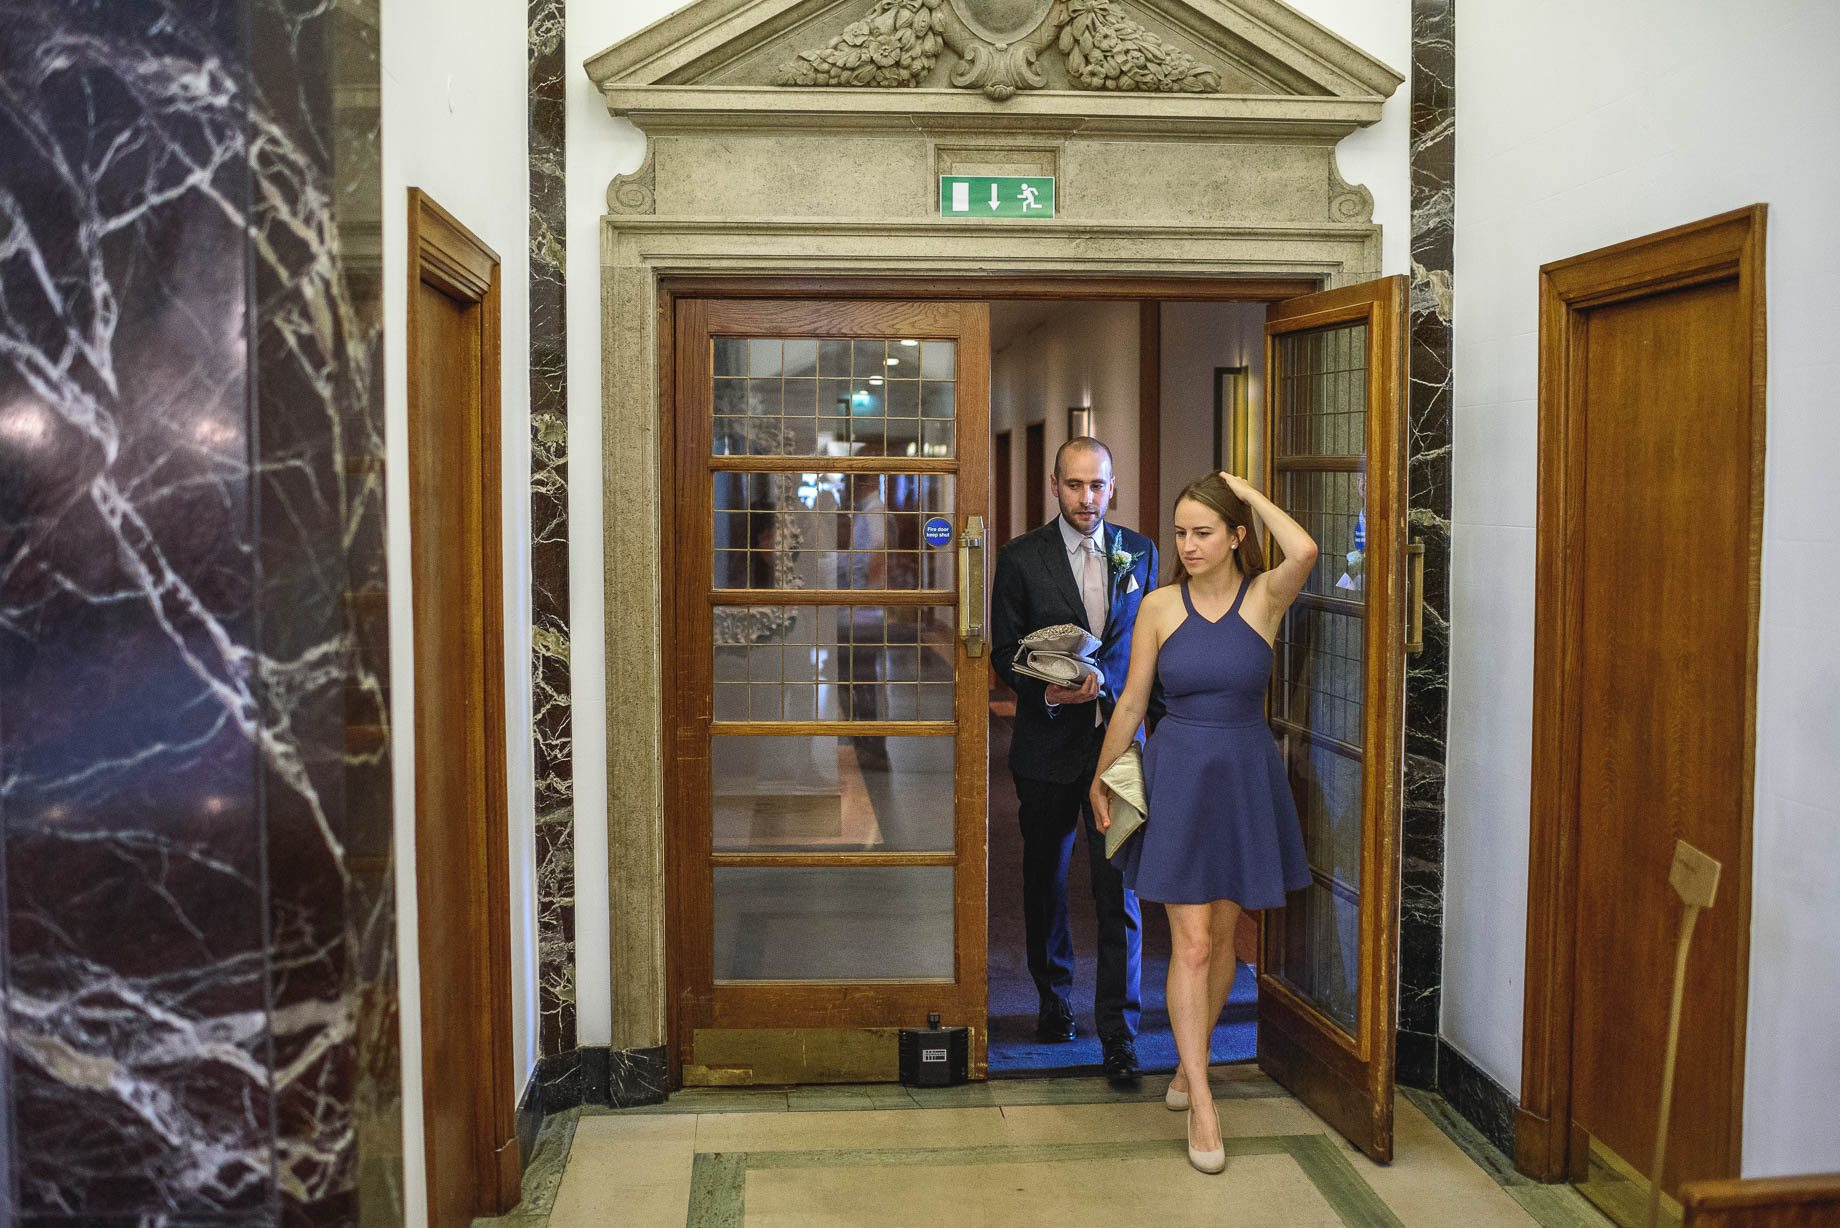 London Wedding Photography - Guy Collier Photography - LJ + Russell (39 of 155)